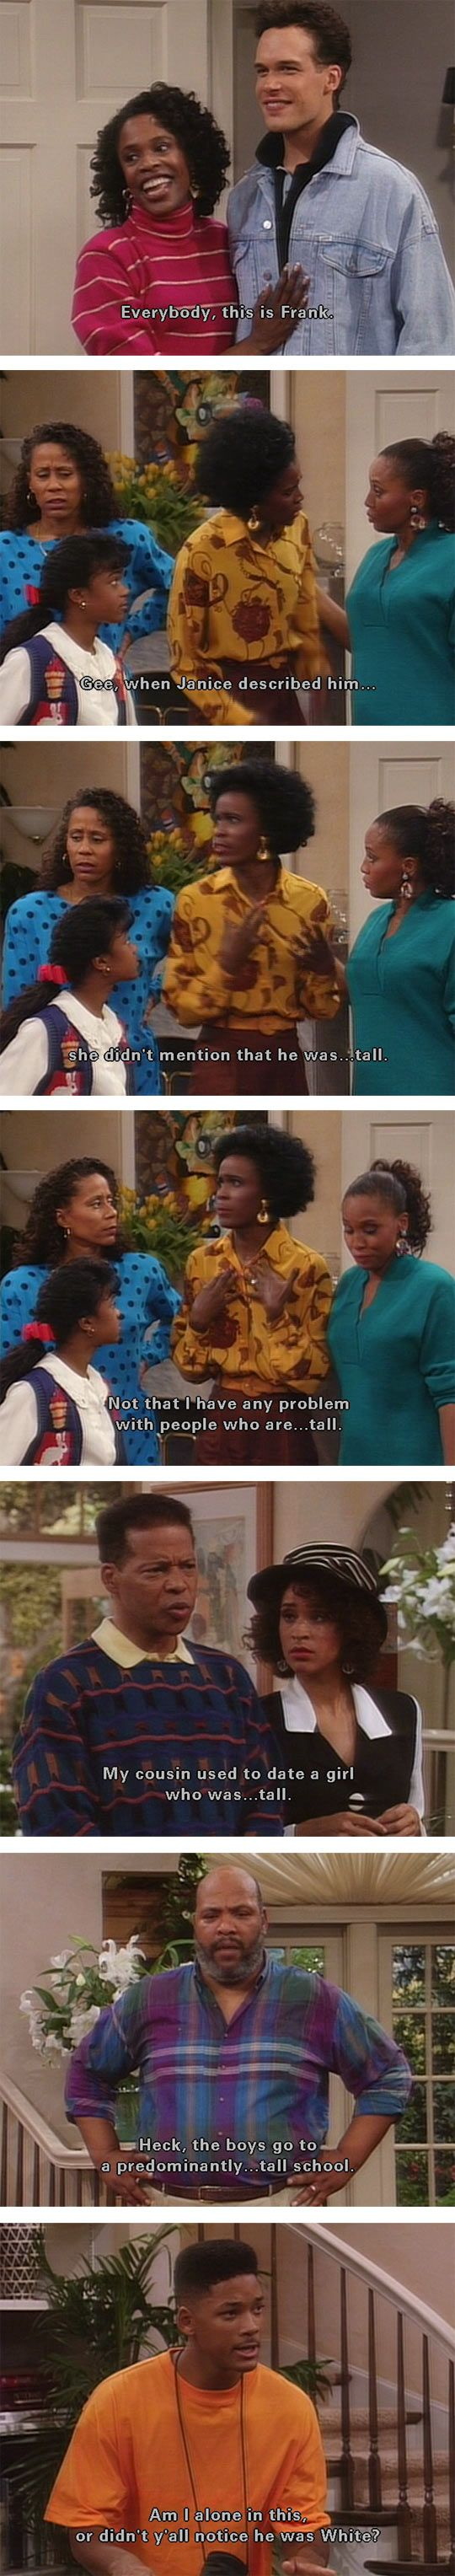 One Of My Favorite Fresh Prince Moments